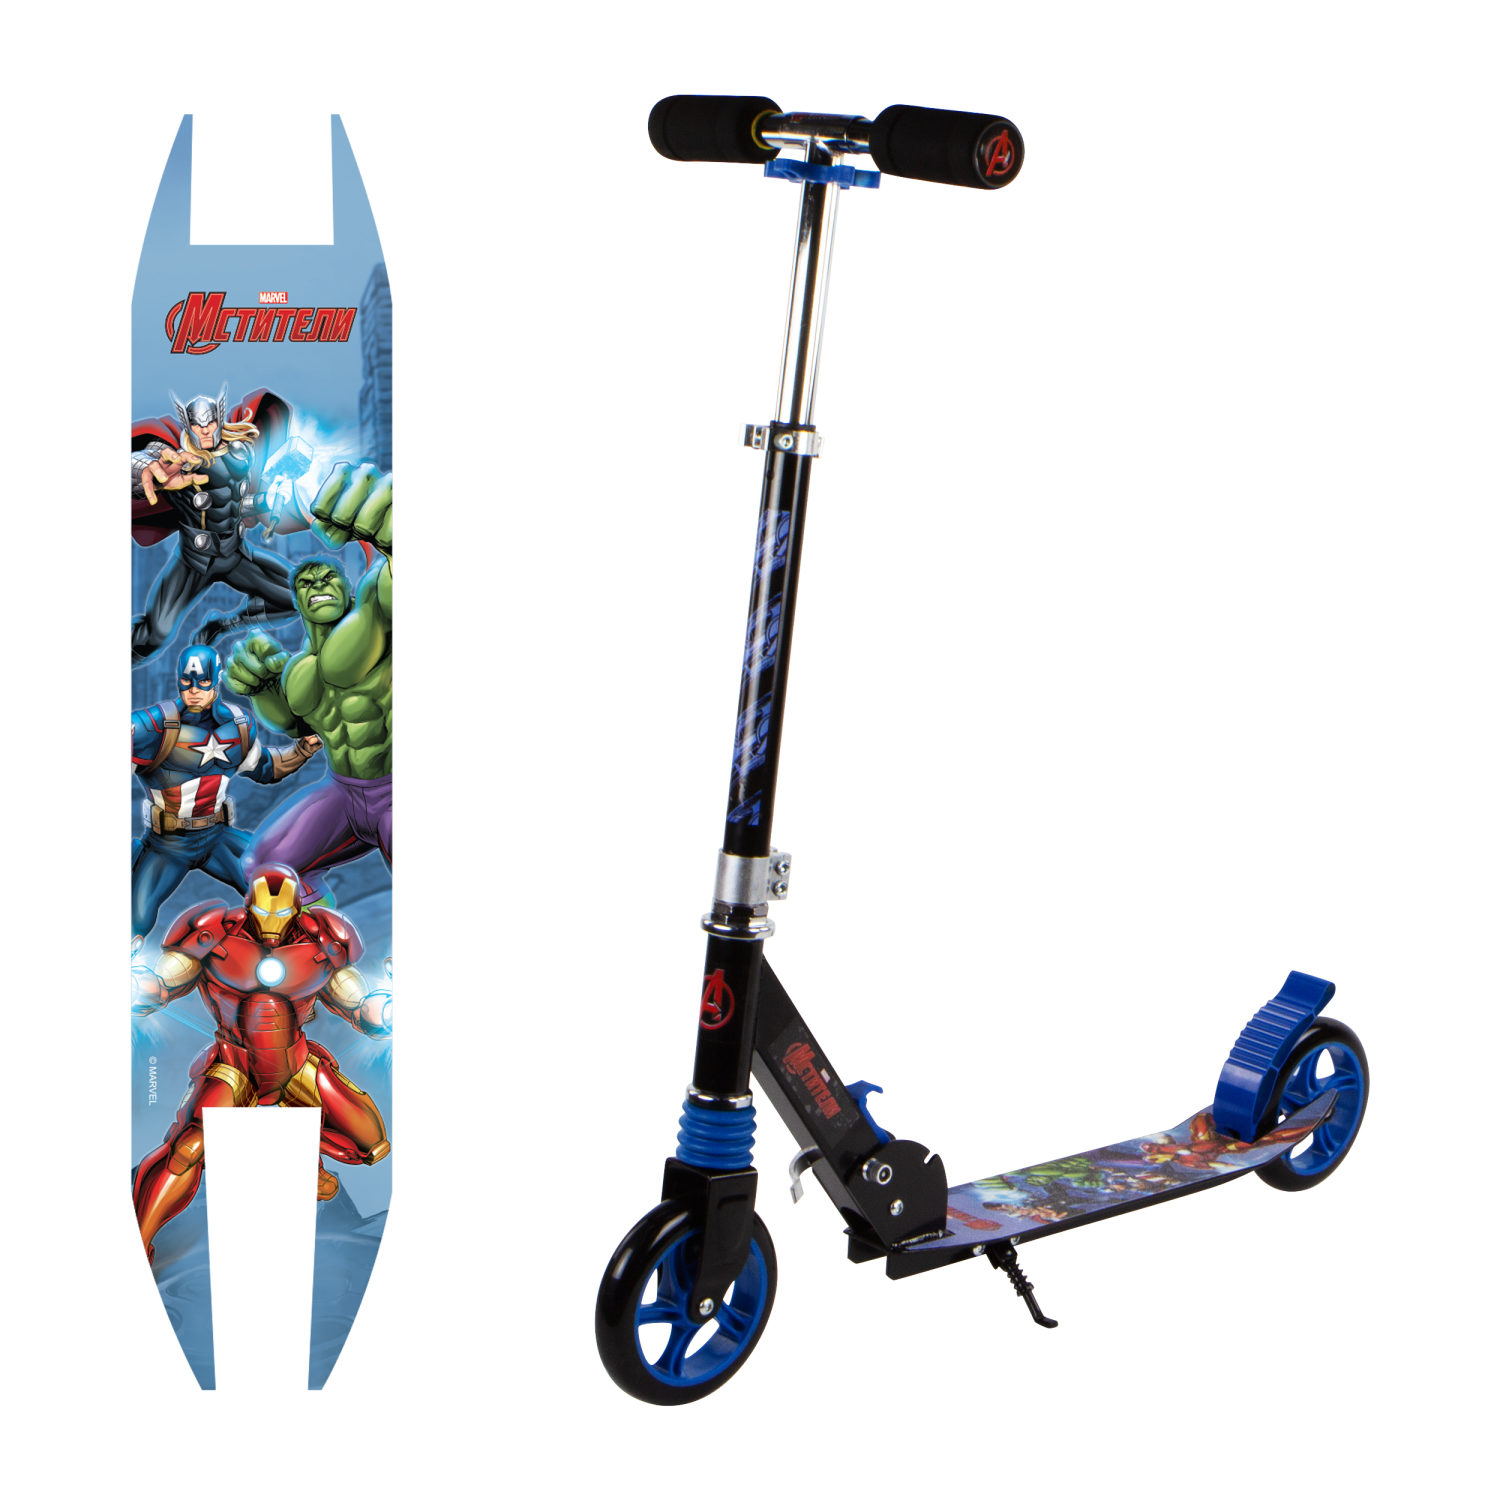 Scooter Two-wheeled Marvel Avengers The Goods For The Sport